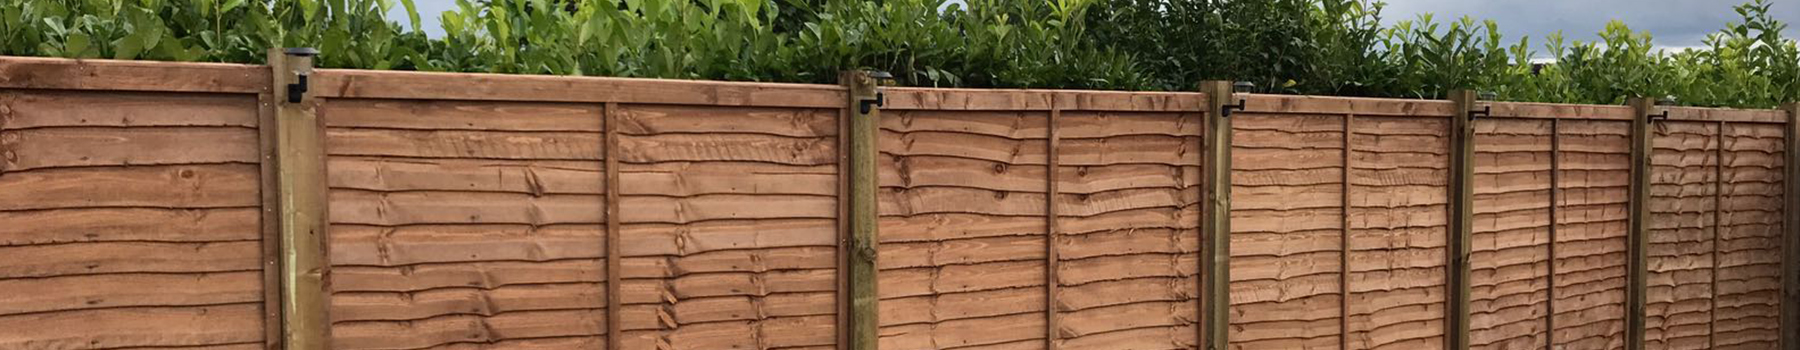 As you local fencing company, BN Fencing installed this larch lap fence